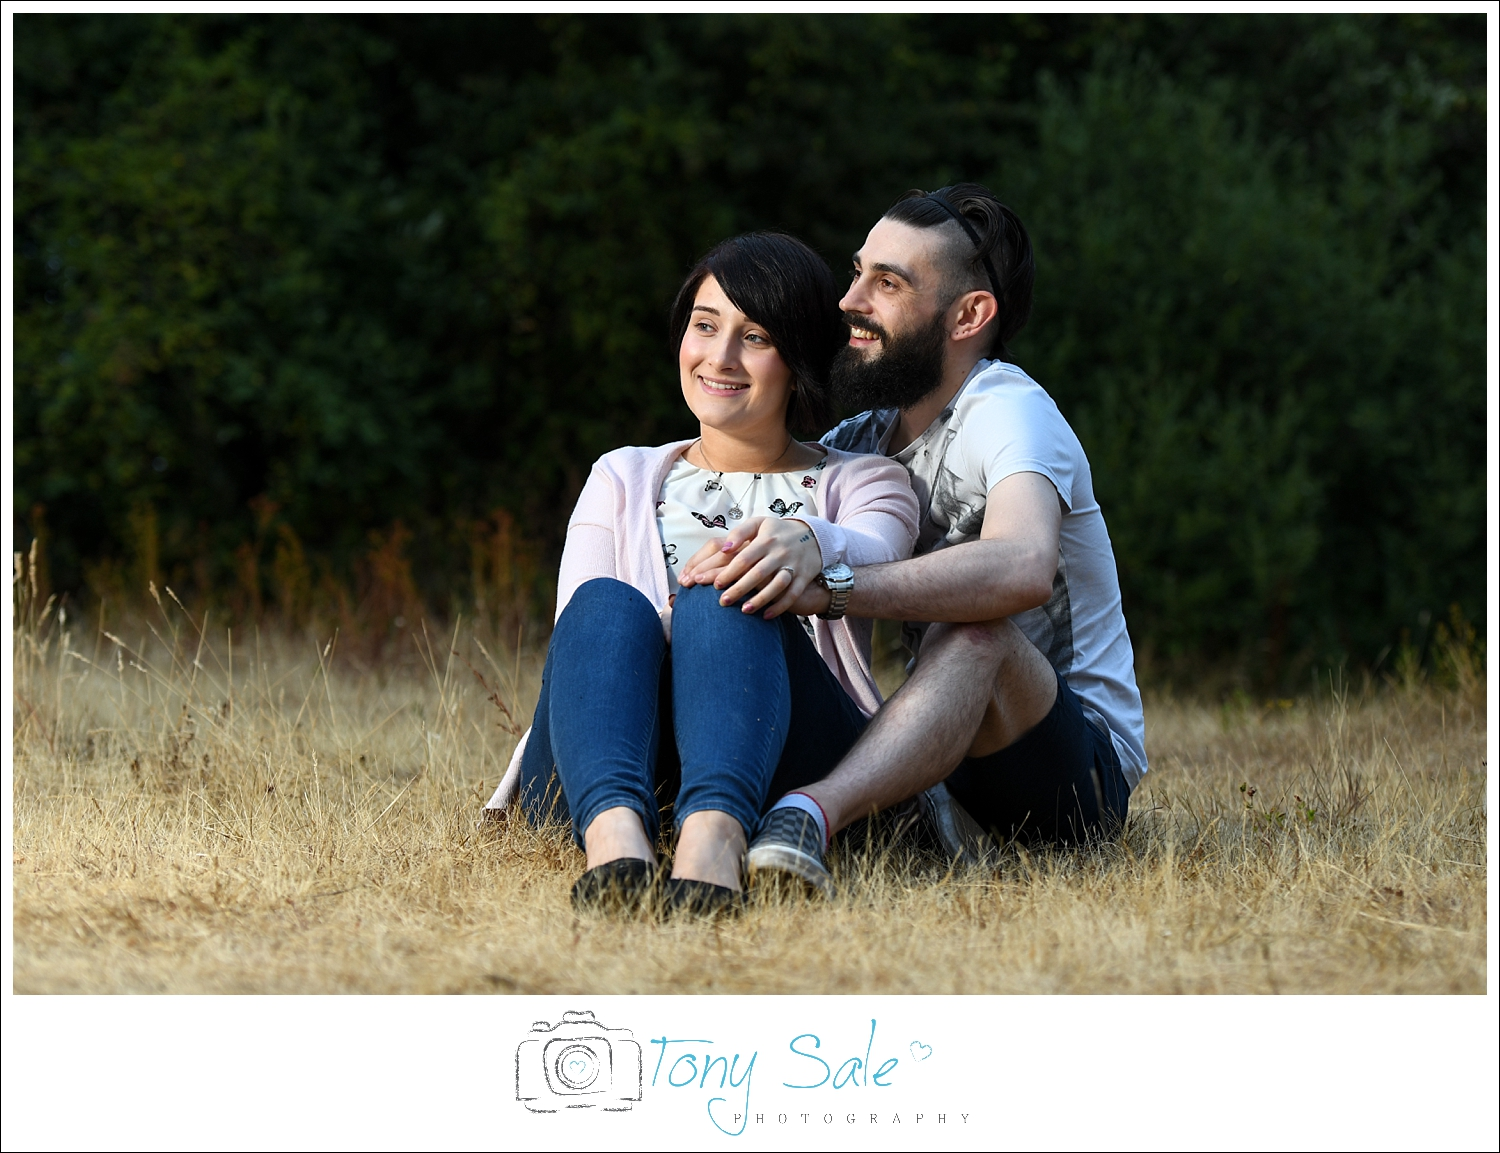 pre wedding photoshoot Gosfield_Tony Sale Photography_012